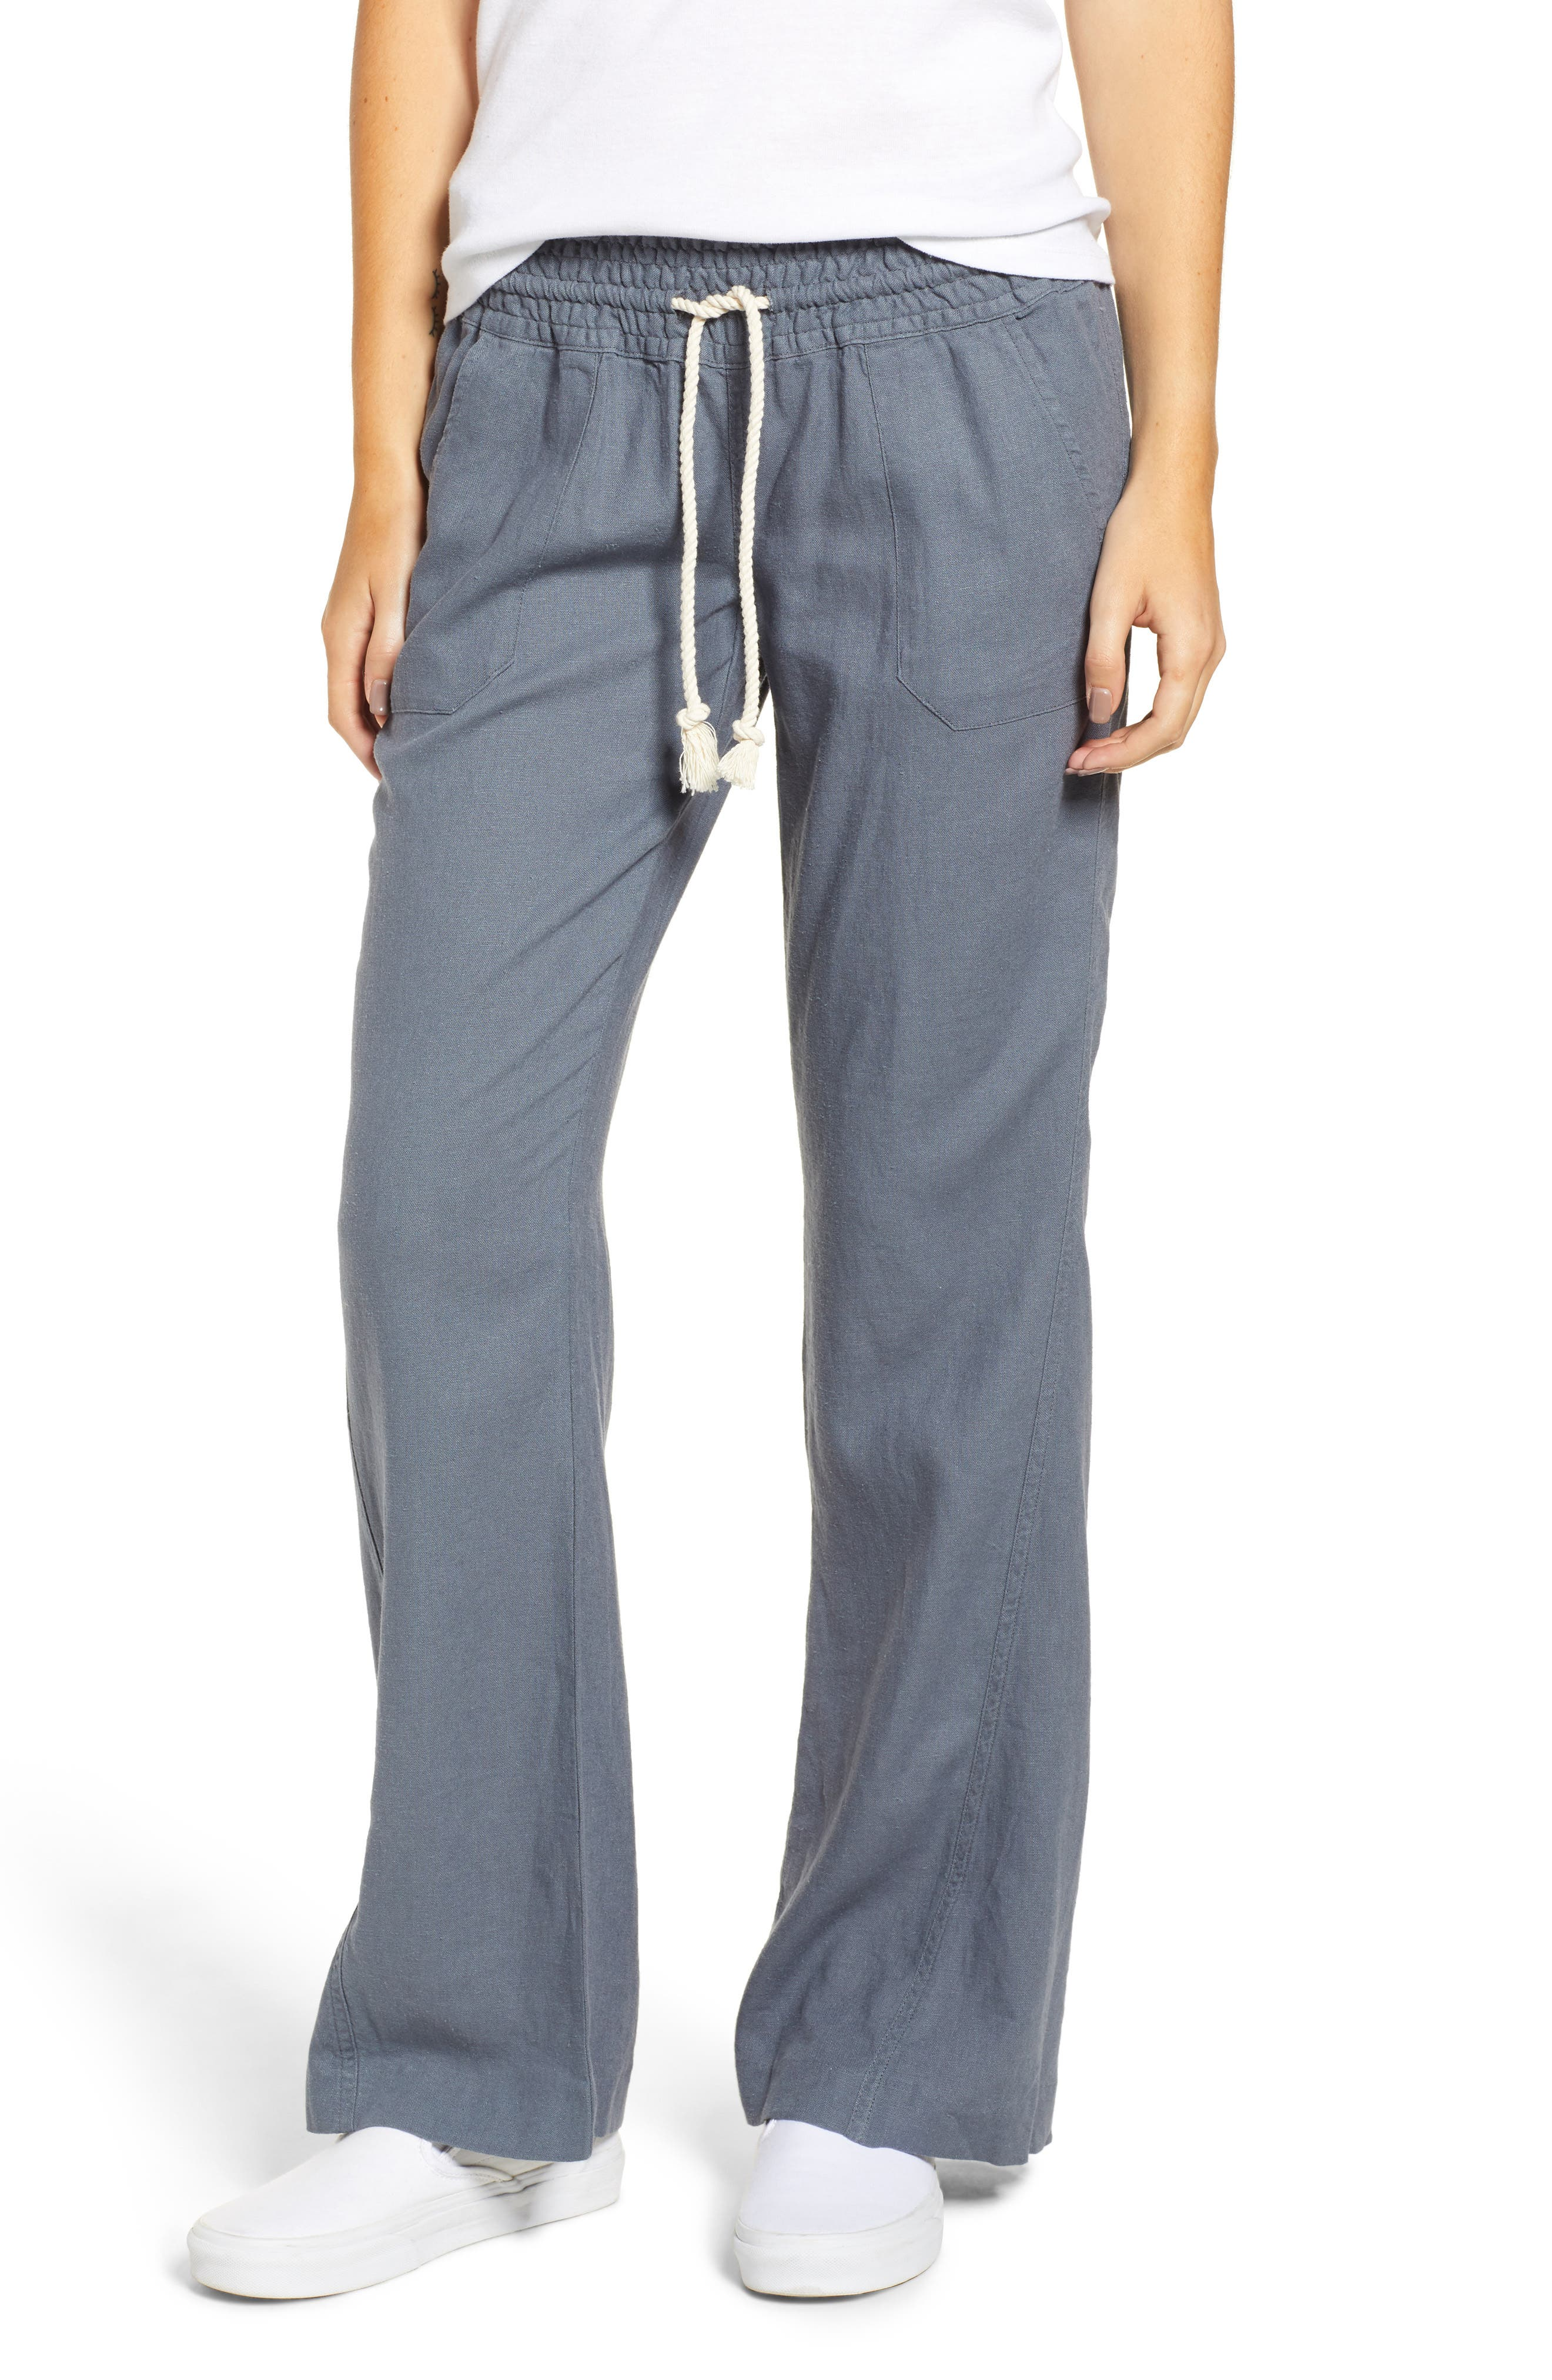 'Oceanside' Beach Pants,                         Main,                         color, 020